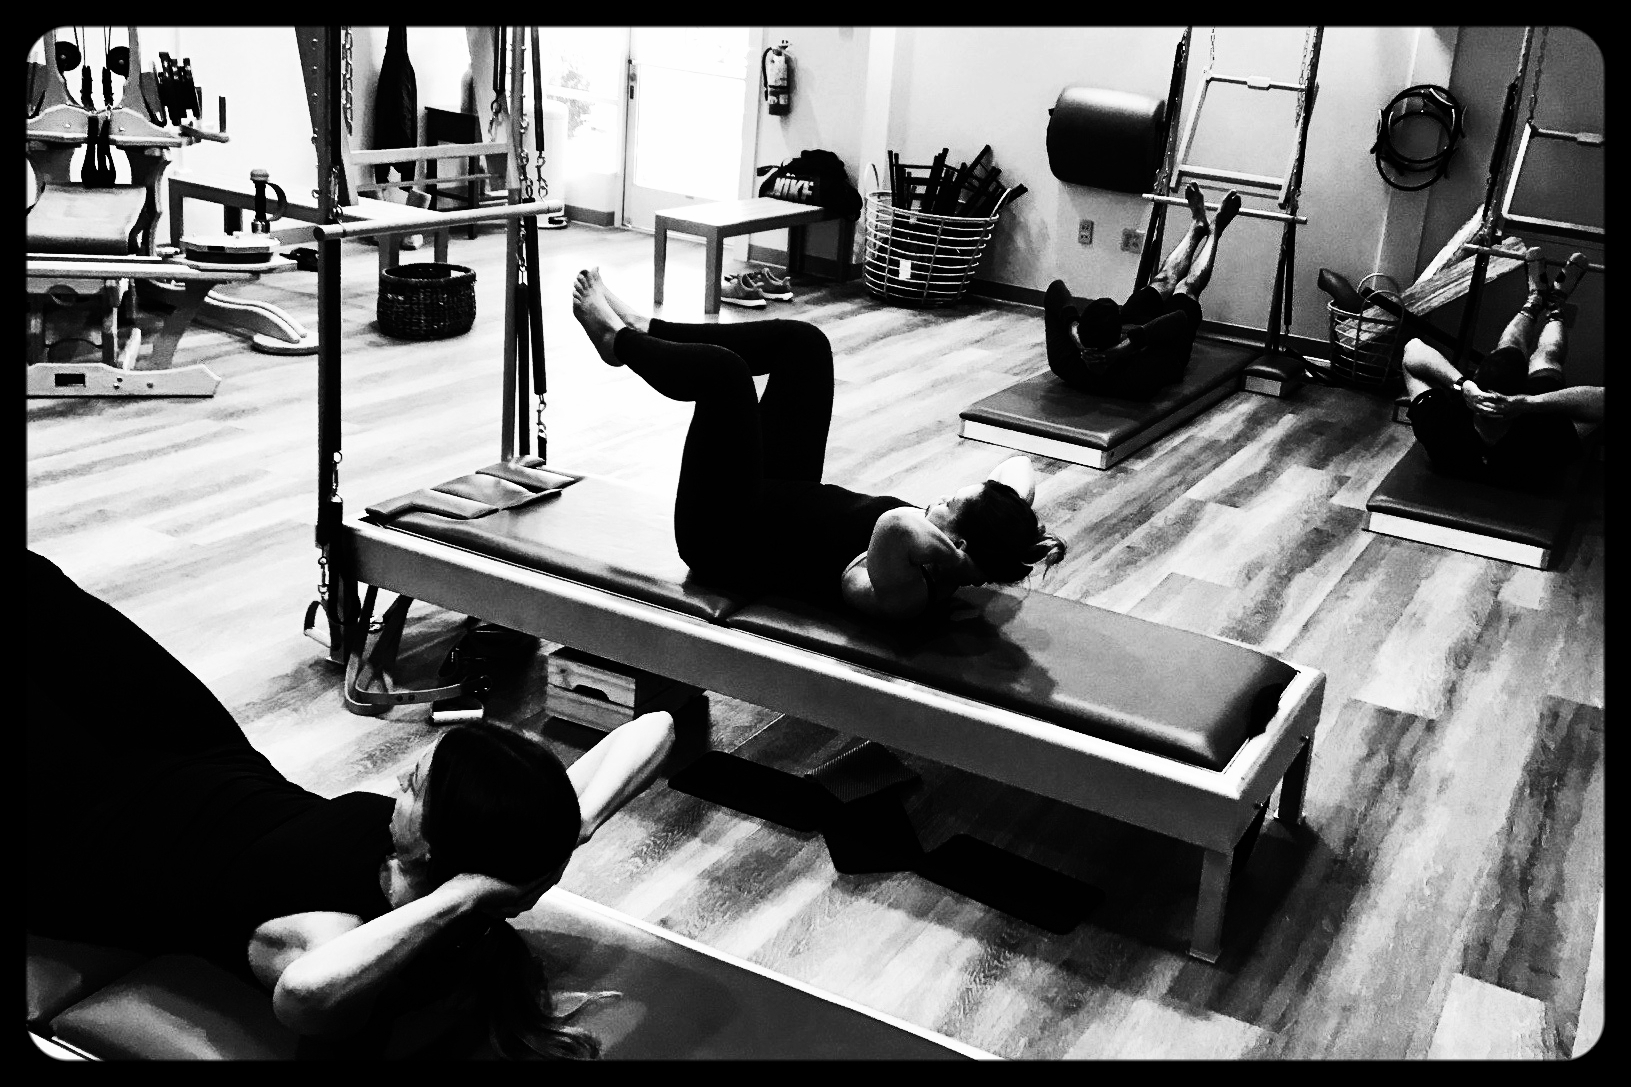 Pilates Mat  - The heart and soul of the Pilates method! Learn the REAL mat the Mat that Joe invented himself and has sparked an entire fitness revolution. Work the body in all  planes of motion with nothing but your own body weight and gravity.  Classes is limited to 6 participants.